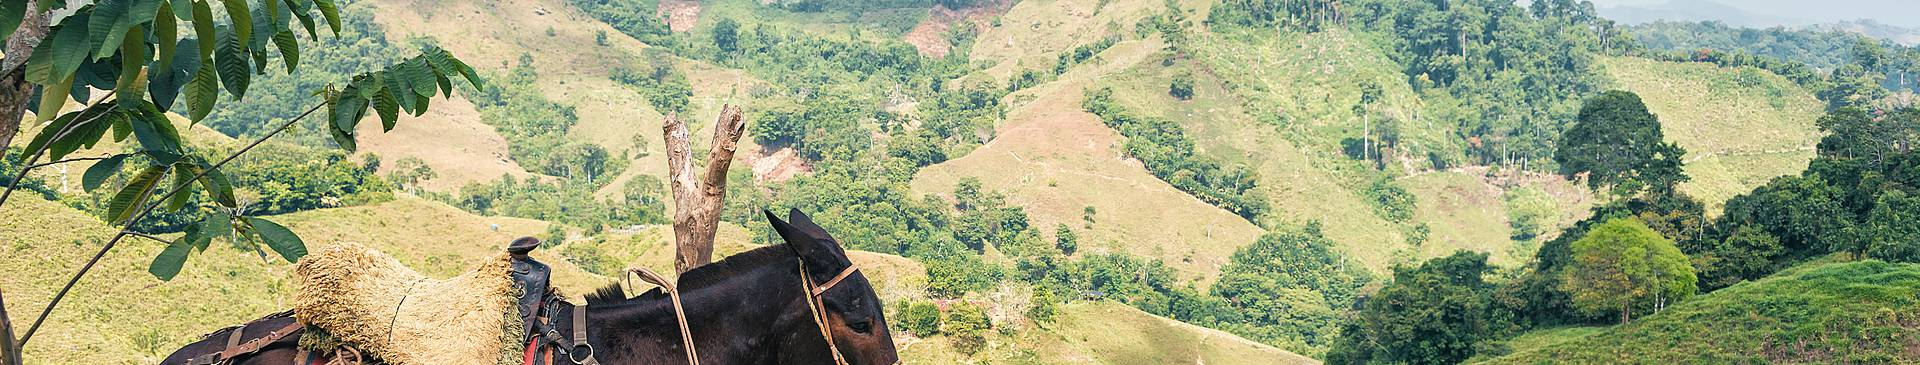 Colombia off-the-beaten-track